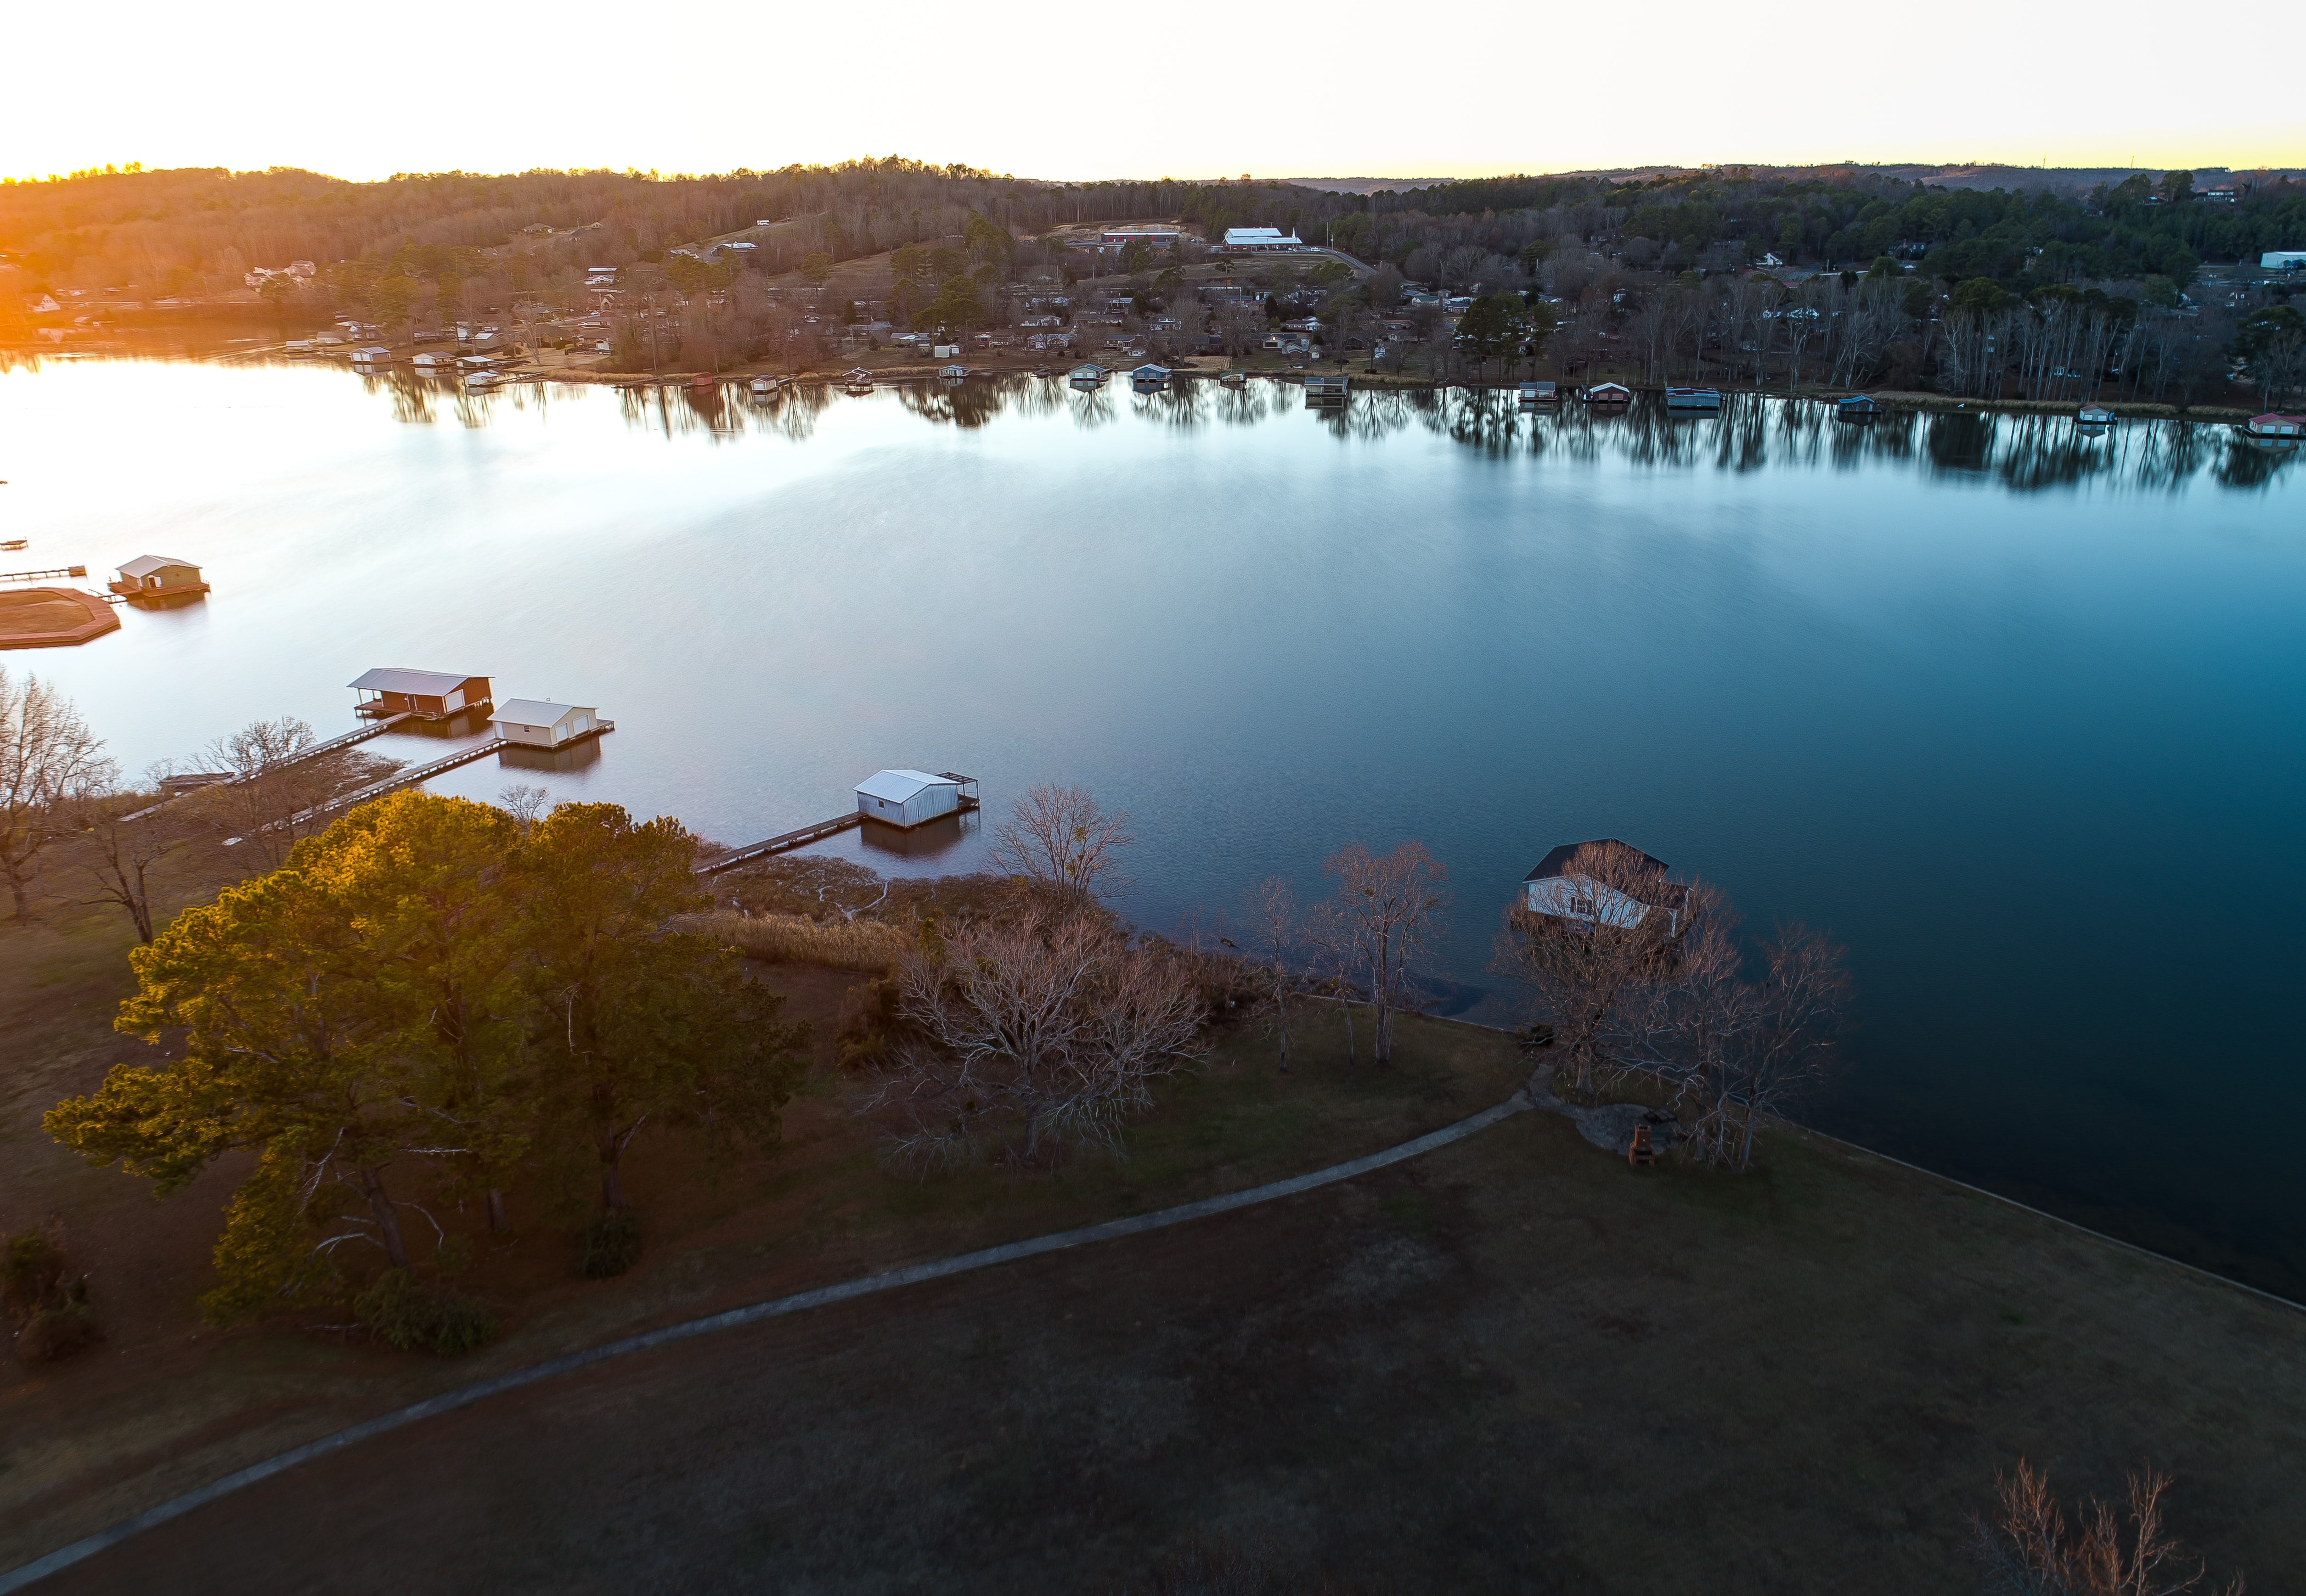 Aerial view shot with a drone of boathouses in Guntersville, Alabama during sunset